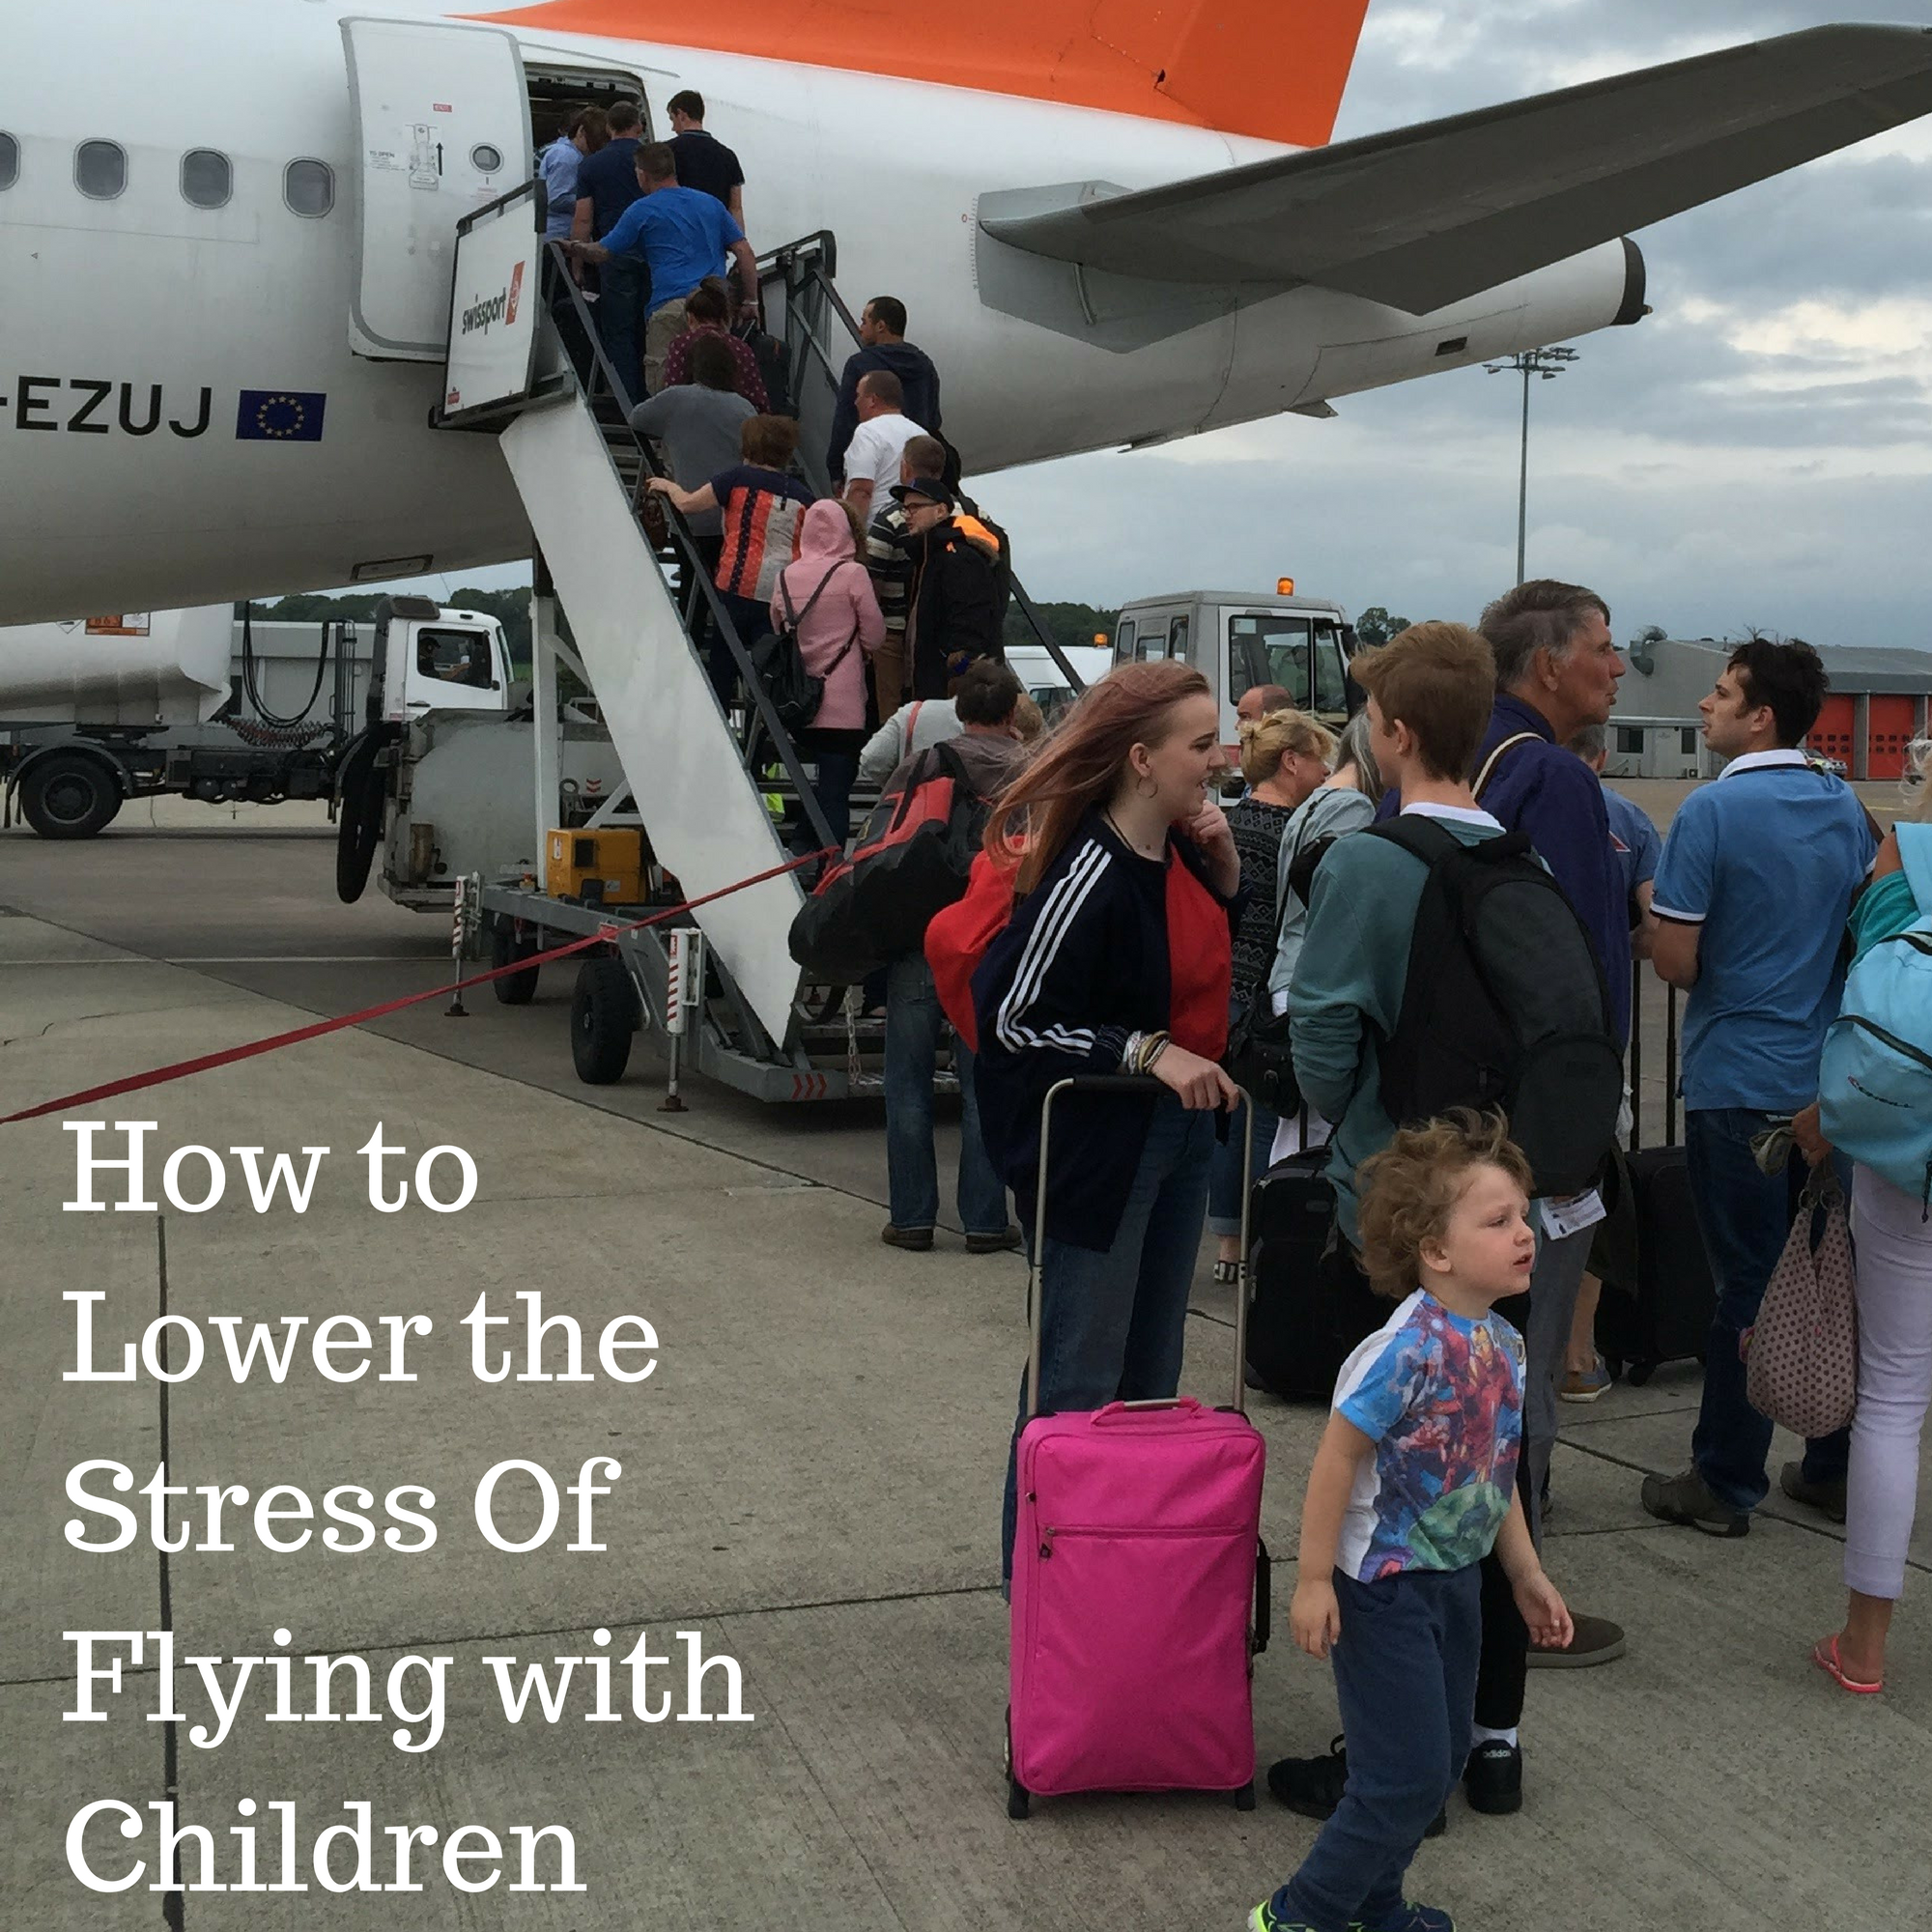 How to Lower the Stress Of Flying with Children